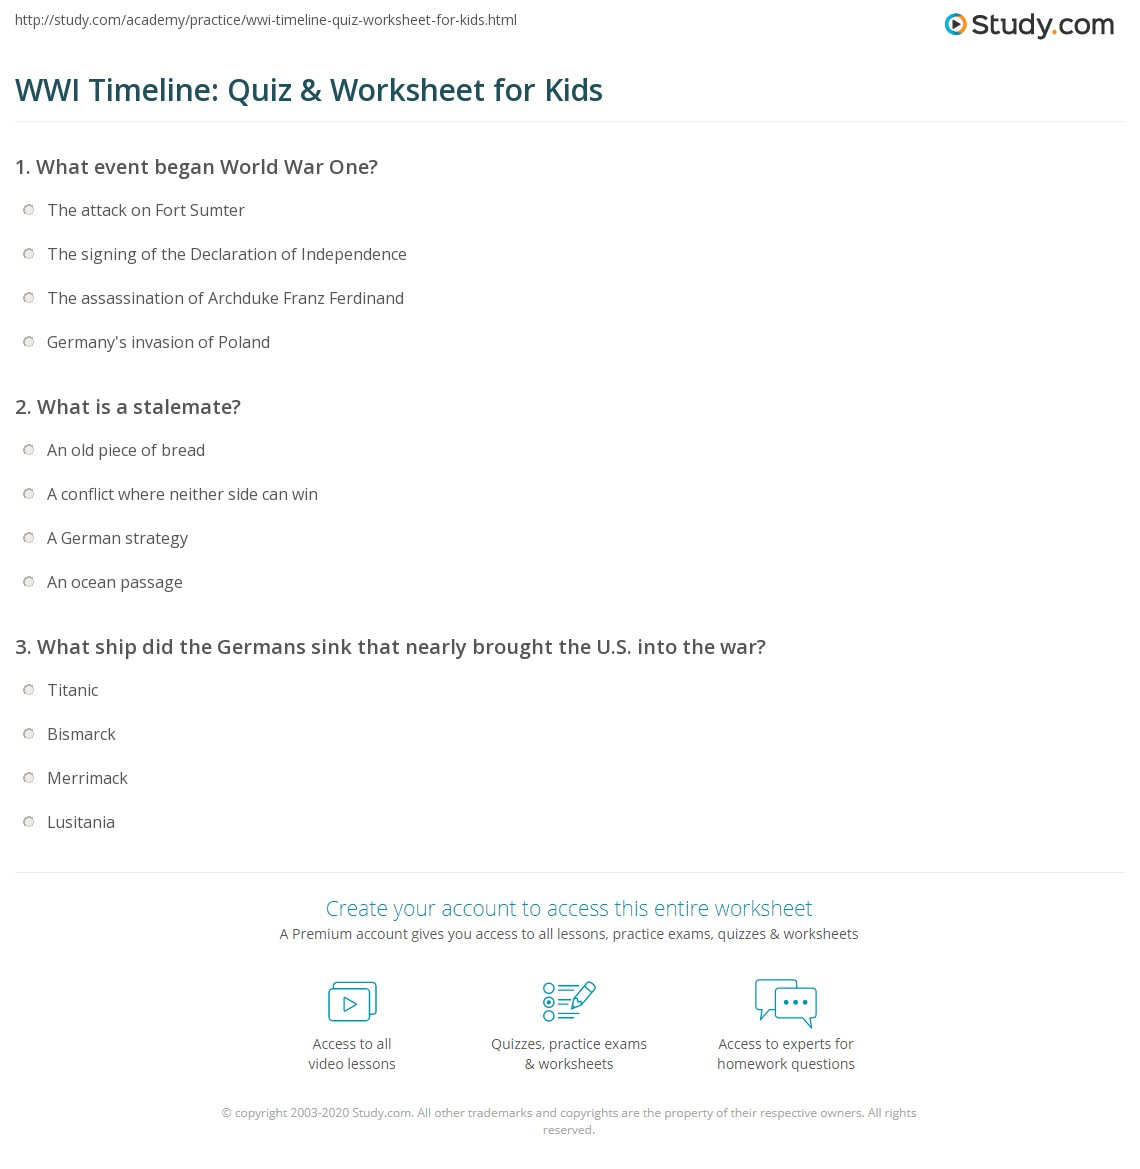 WWI Timeline: Quiz & Worksheet for Kids | Study.com